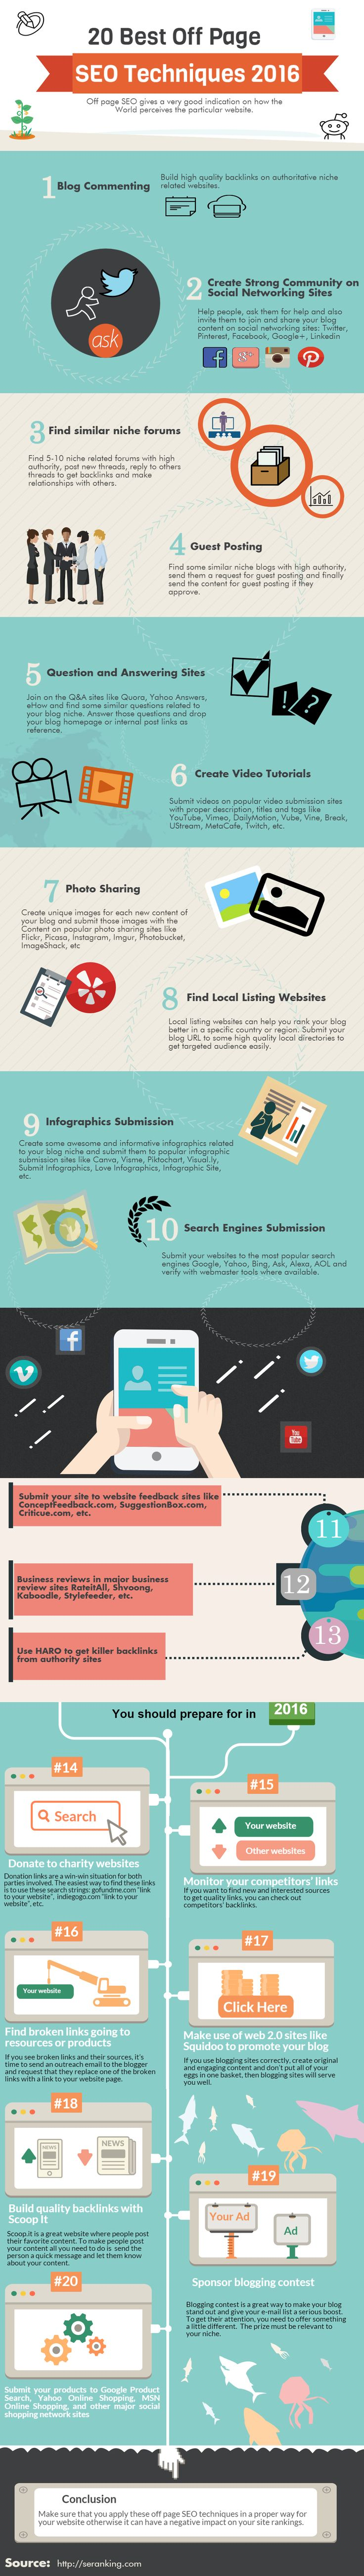 20+Best+Off+Page+SEO+Techniques+for+Site+Owners+in+2016